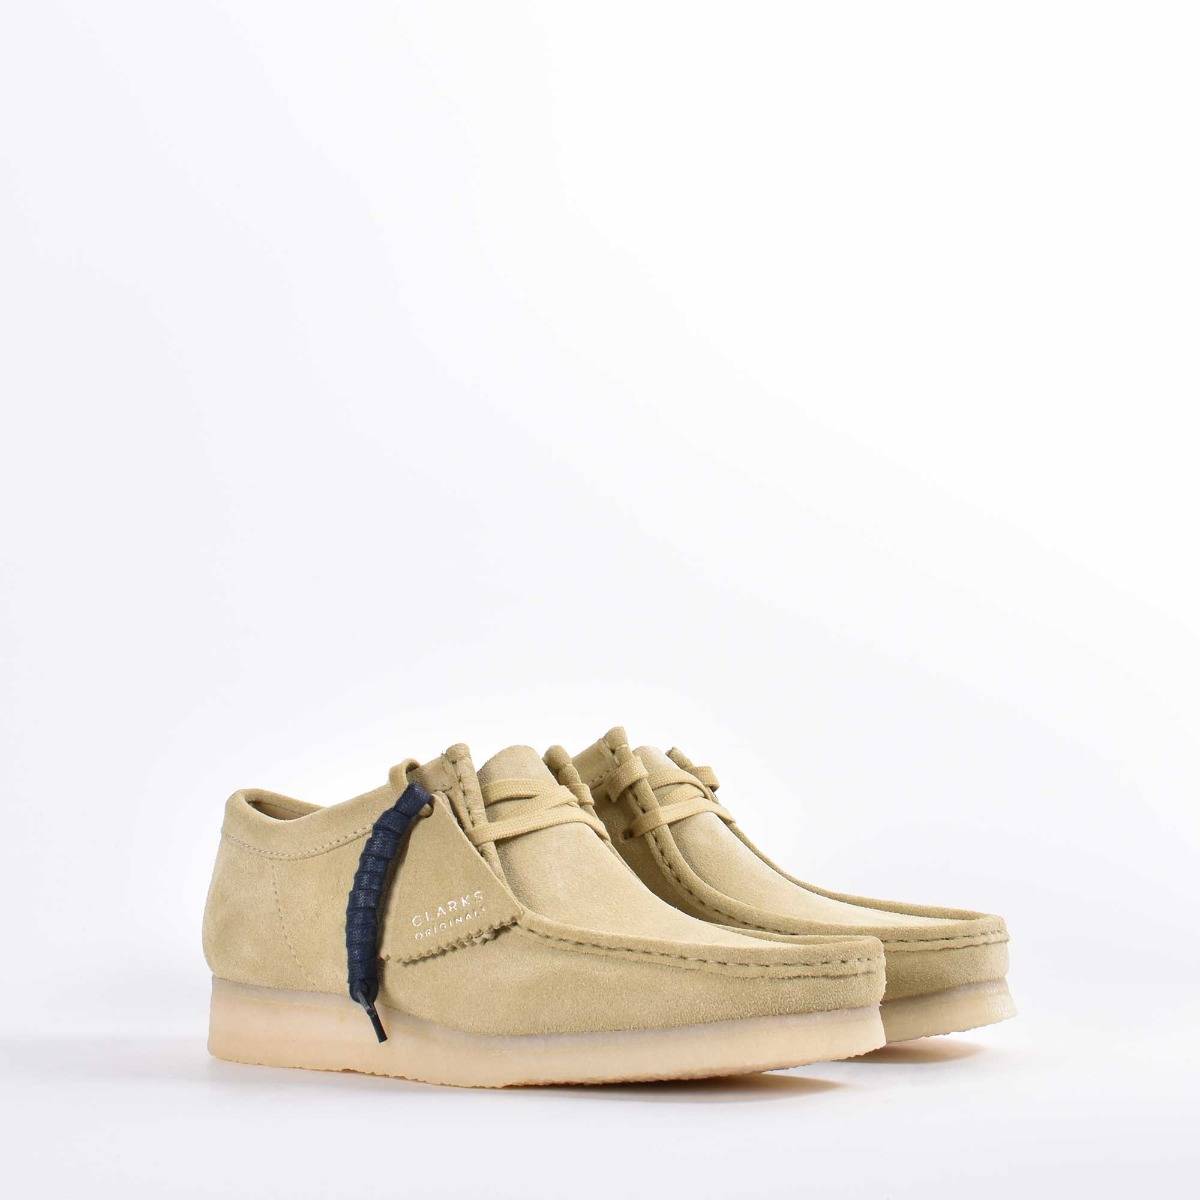 Wallabee stringata - Beige